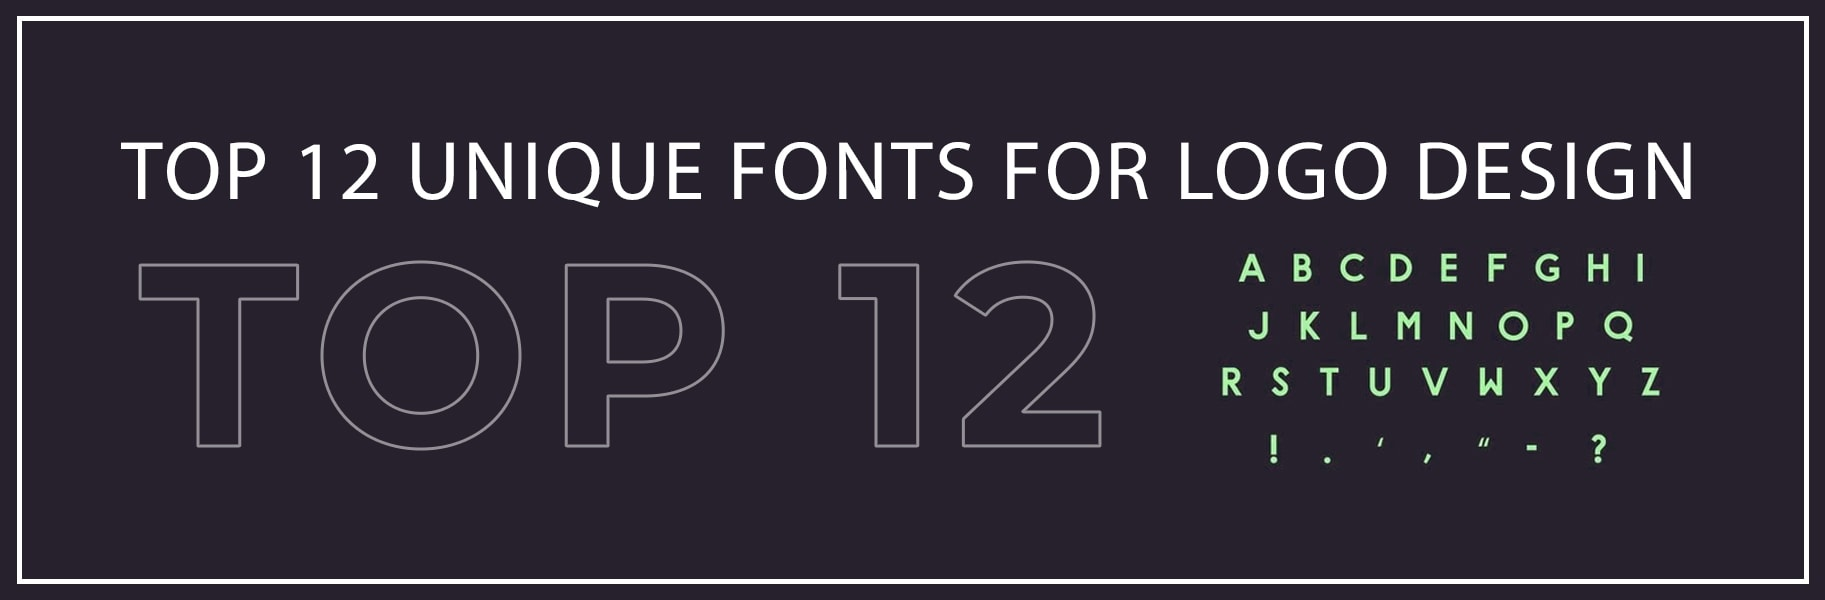 Top 12 Unique Fonts for Logo Design